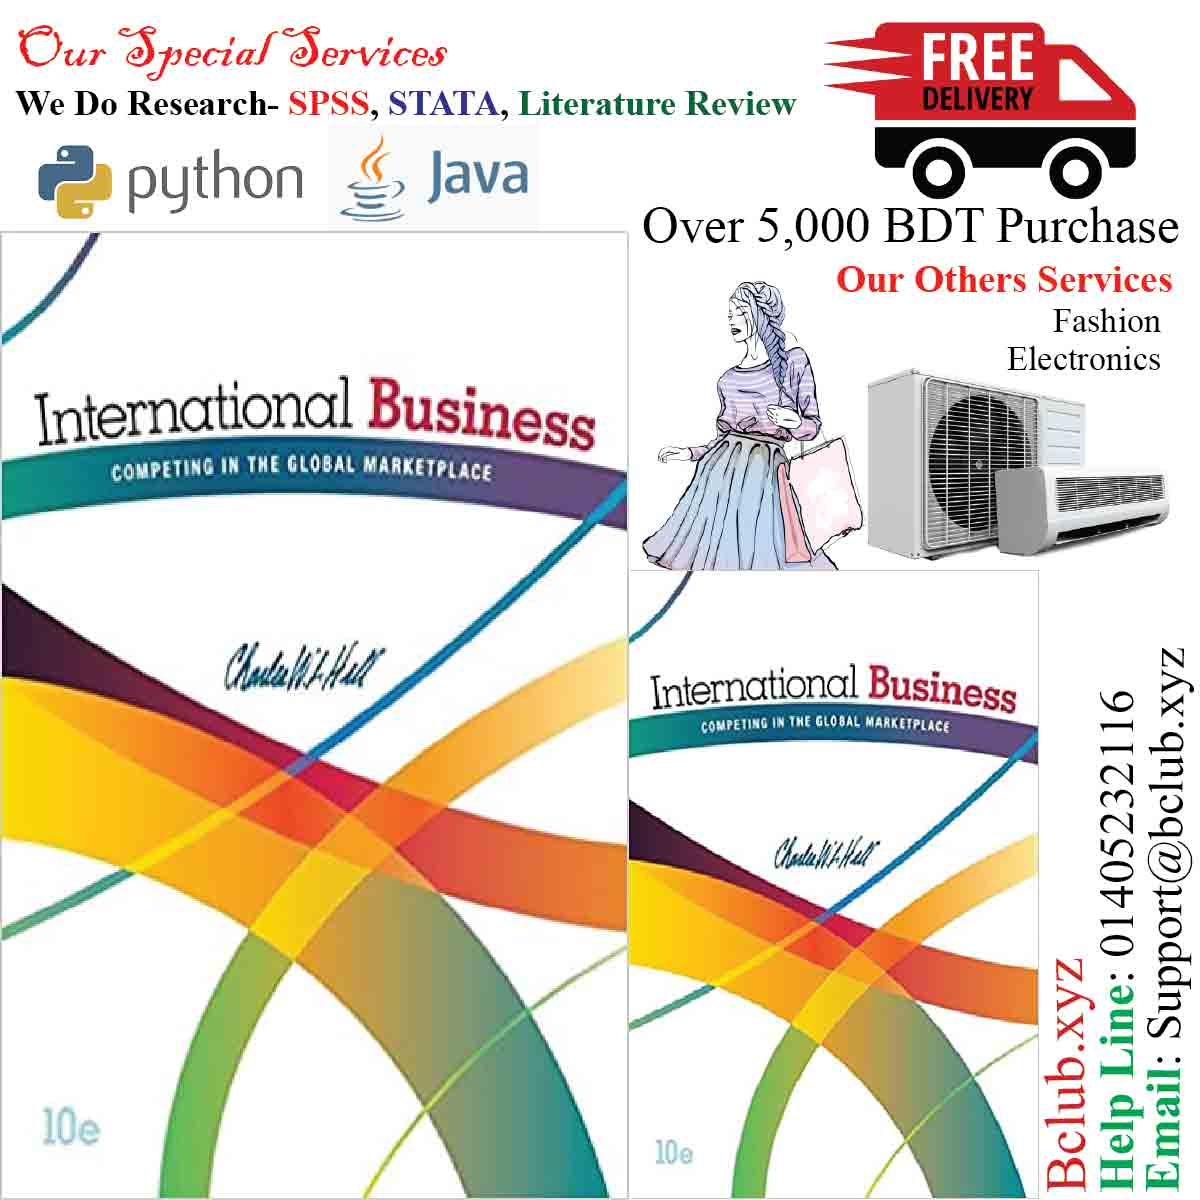 International Business: Competing in the Global Marketplace 10th Edition by Charles Hill (Author)